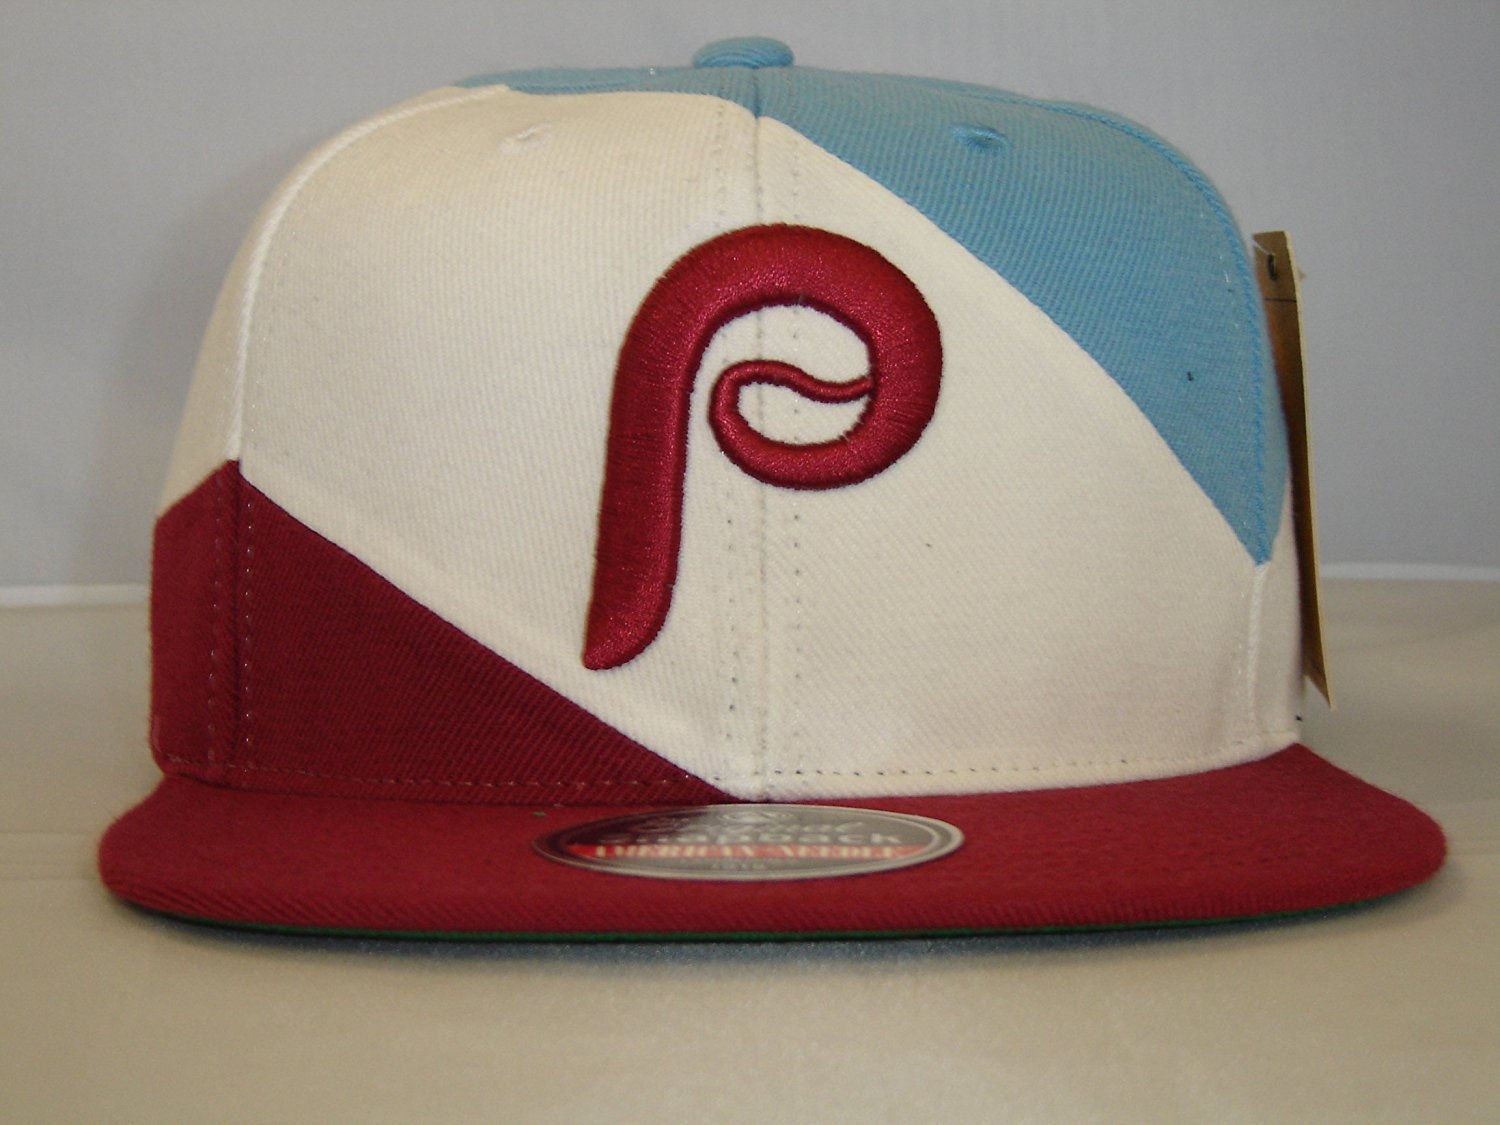 82b0b89a148 Get Quotations · MLB Philadelphia Phillies Trio Custom Retro Snapback cap